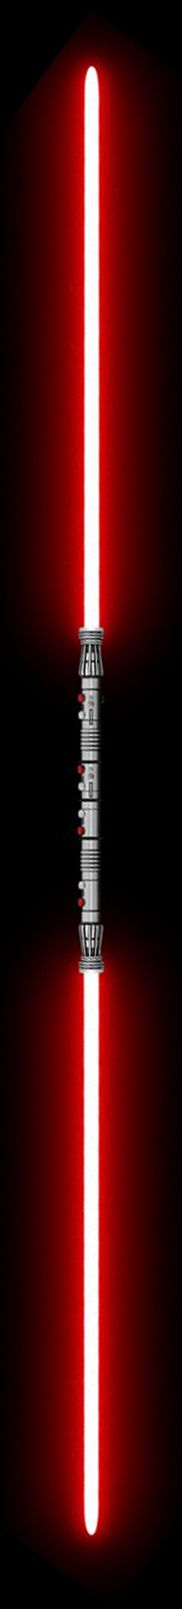 Episode I - Darth Maul lightsaber - Star Wars